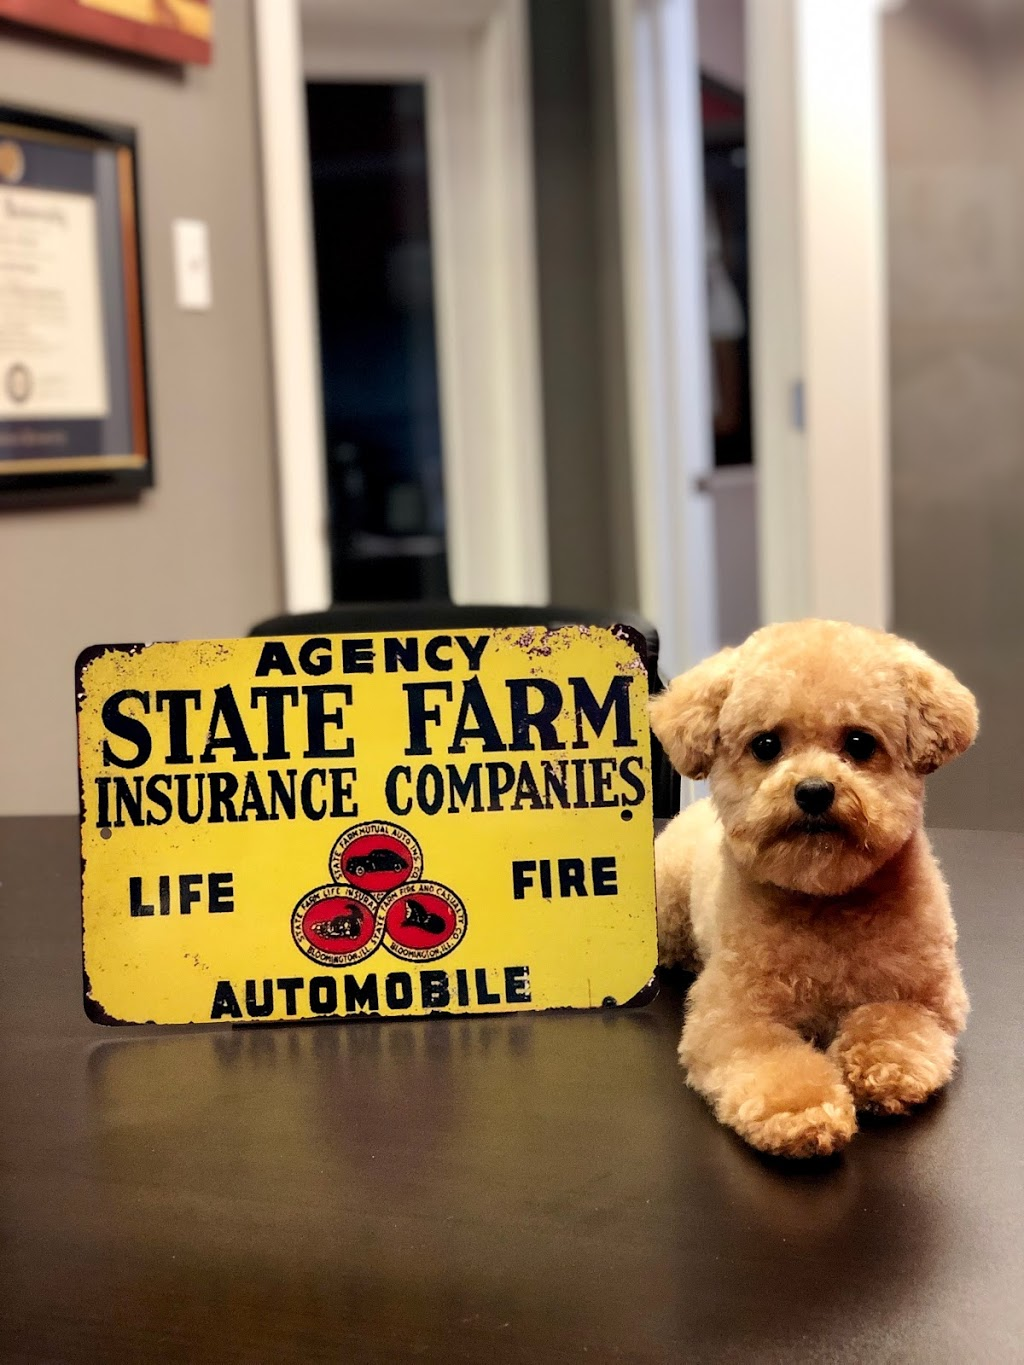 Wesley Ranew - State Farm Insurance Agent | insurance agency | 13434 Clayton Rd, St. Louis, MO 63131, USA | 6362272000 OR +1 636-227-2000